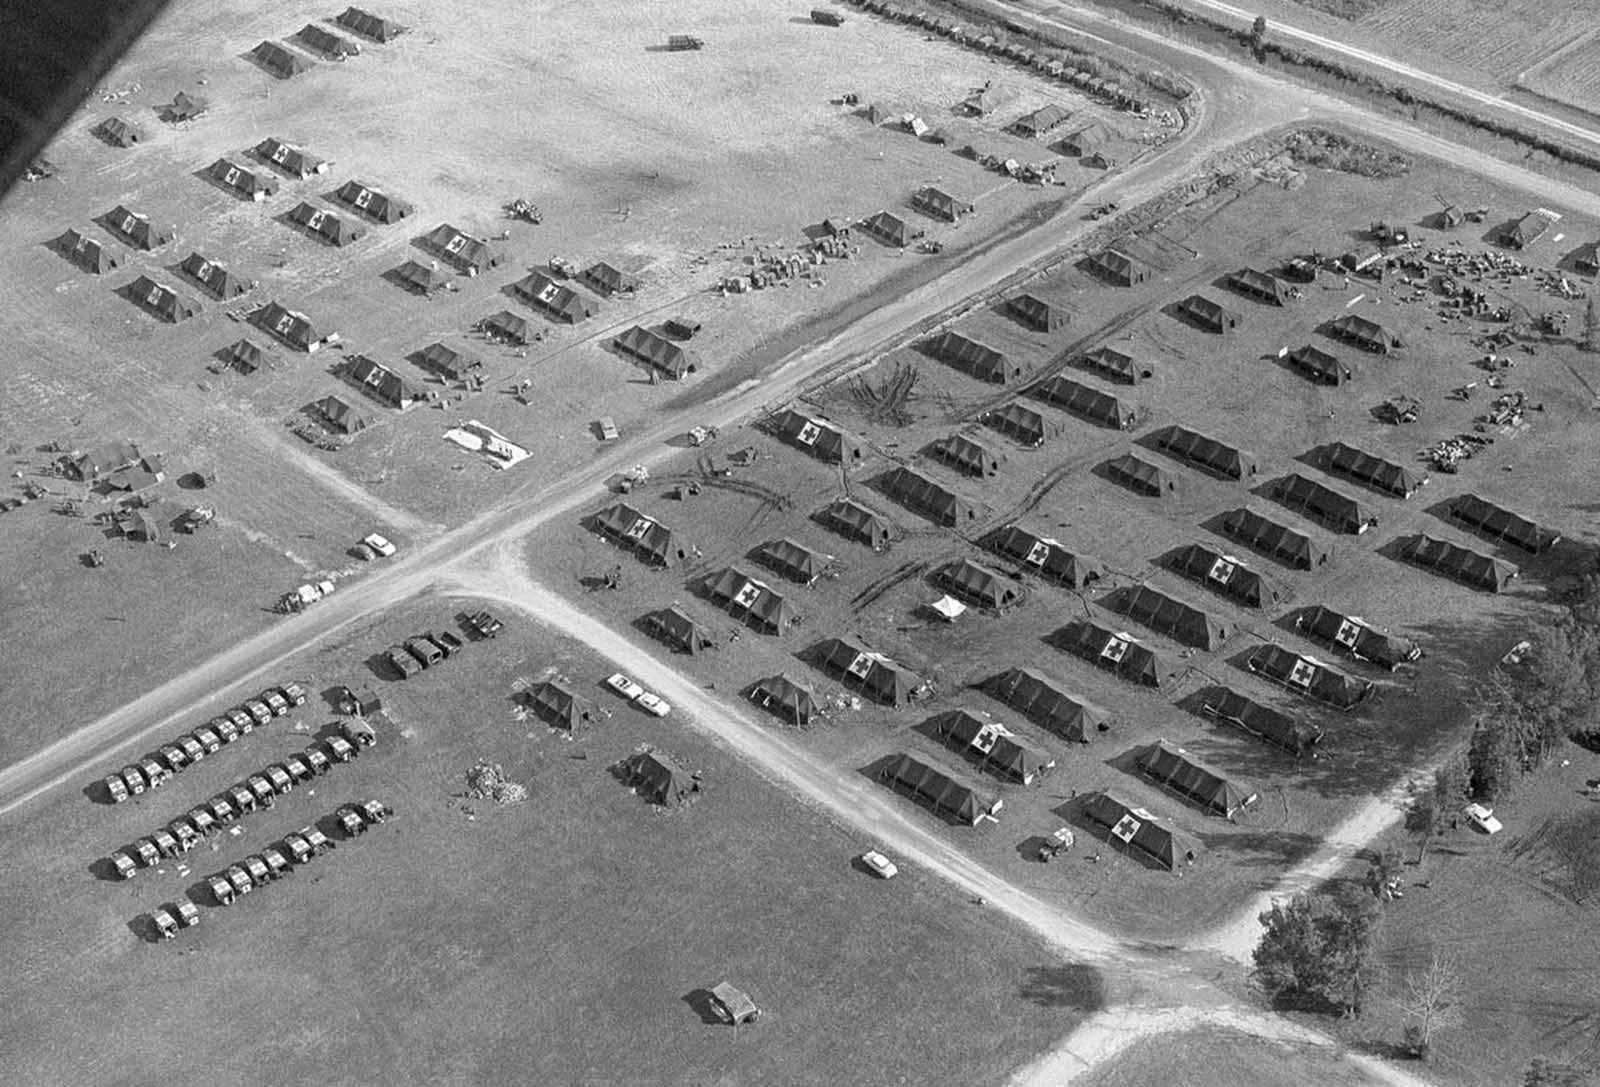 A group of U.S. Army hospital tents and ambulances, set up at the Opa Locka airport, formerly a marine air station in Miami, Florida in November of 1962.